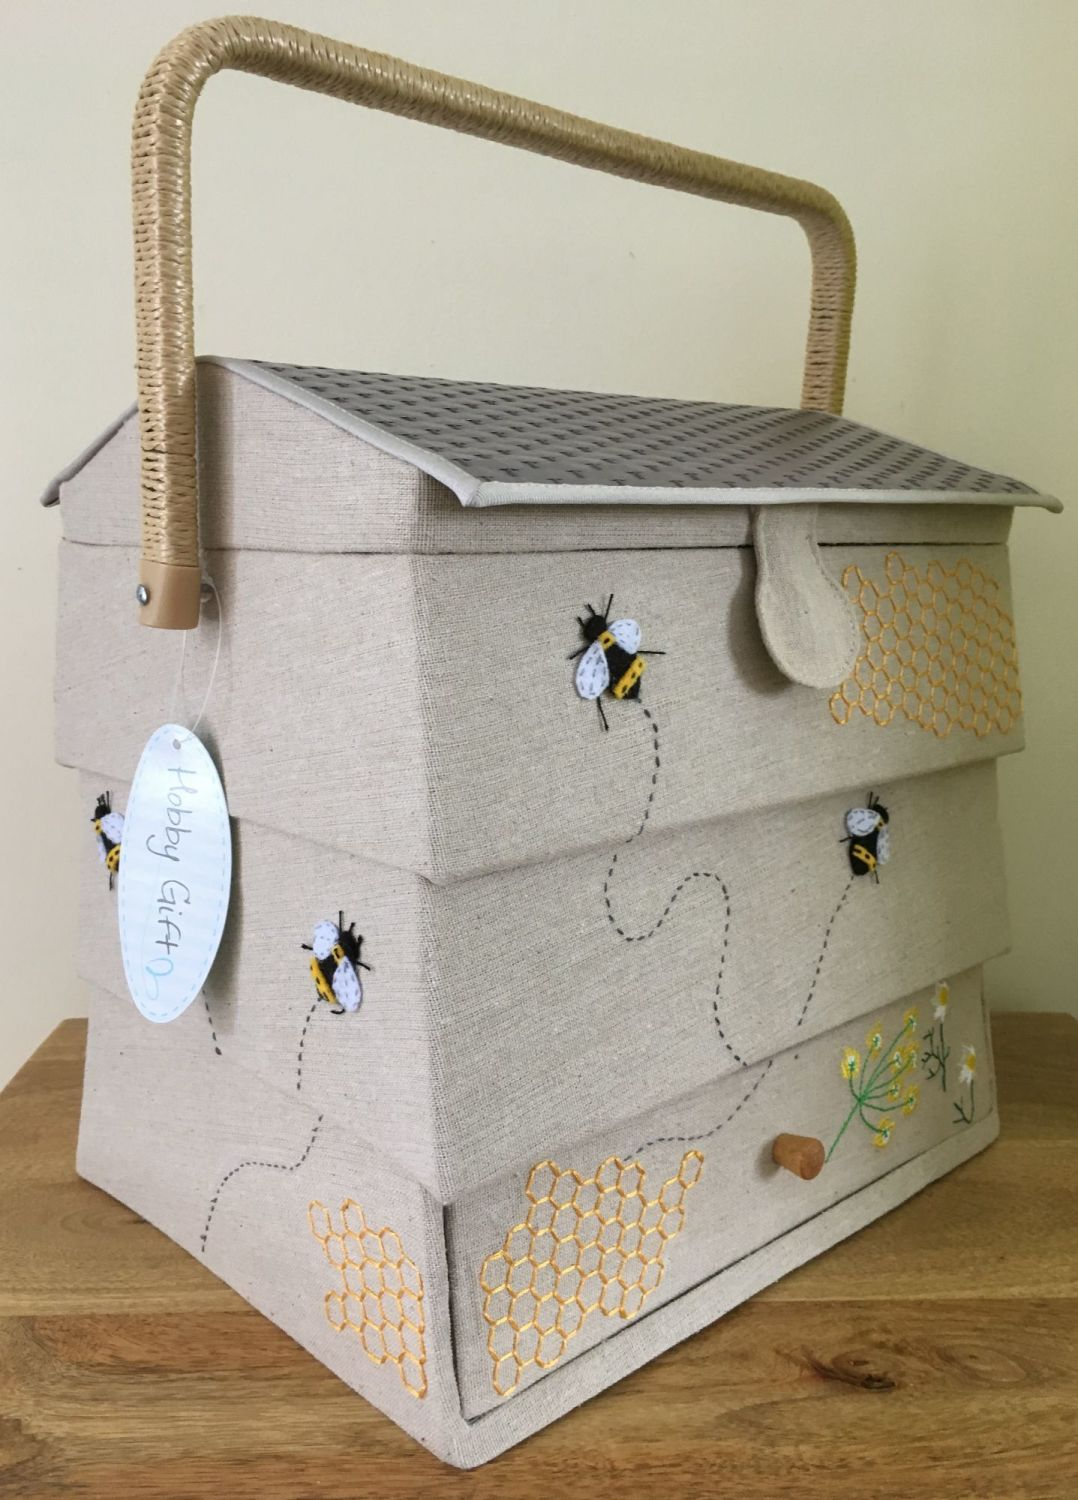 LARGE SEWING BASKET 'BEE HIVE' DESIGN